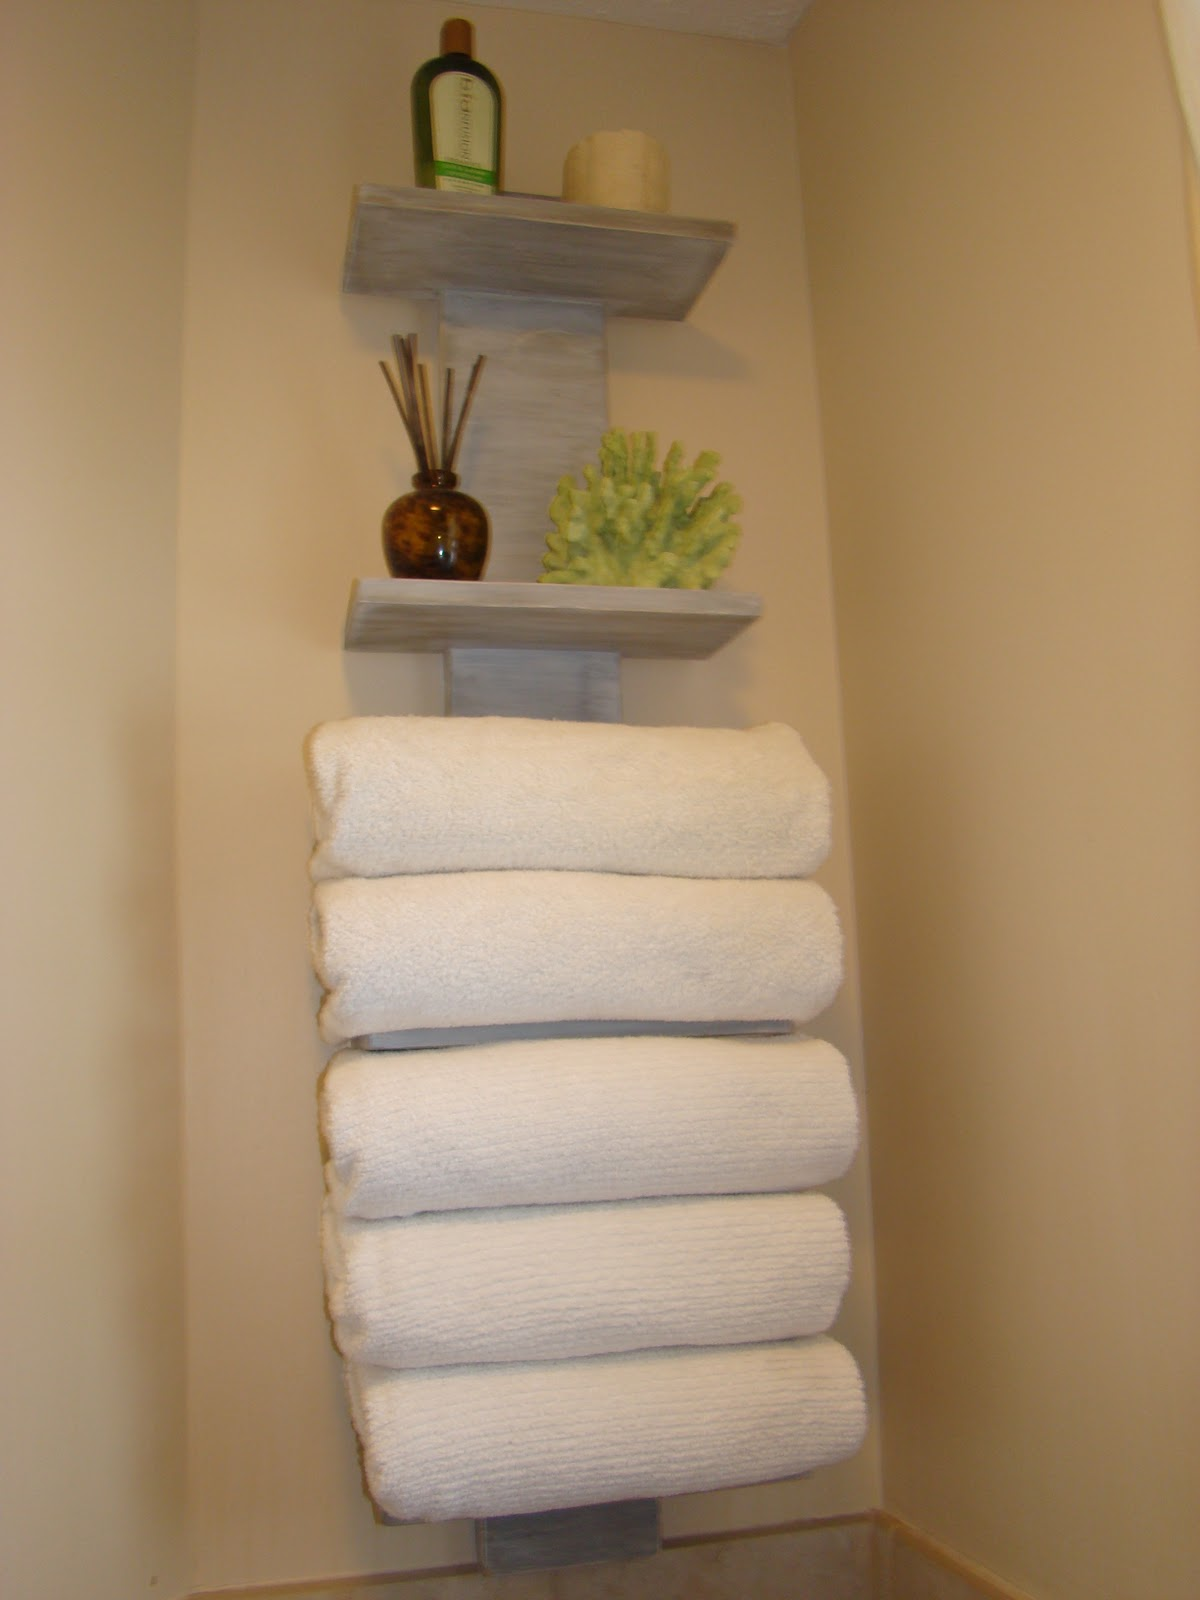 my bath finally gets some towel storage ForBathroom Towel Storage